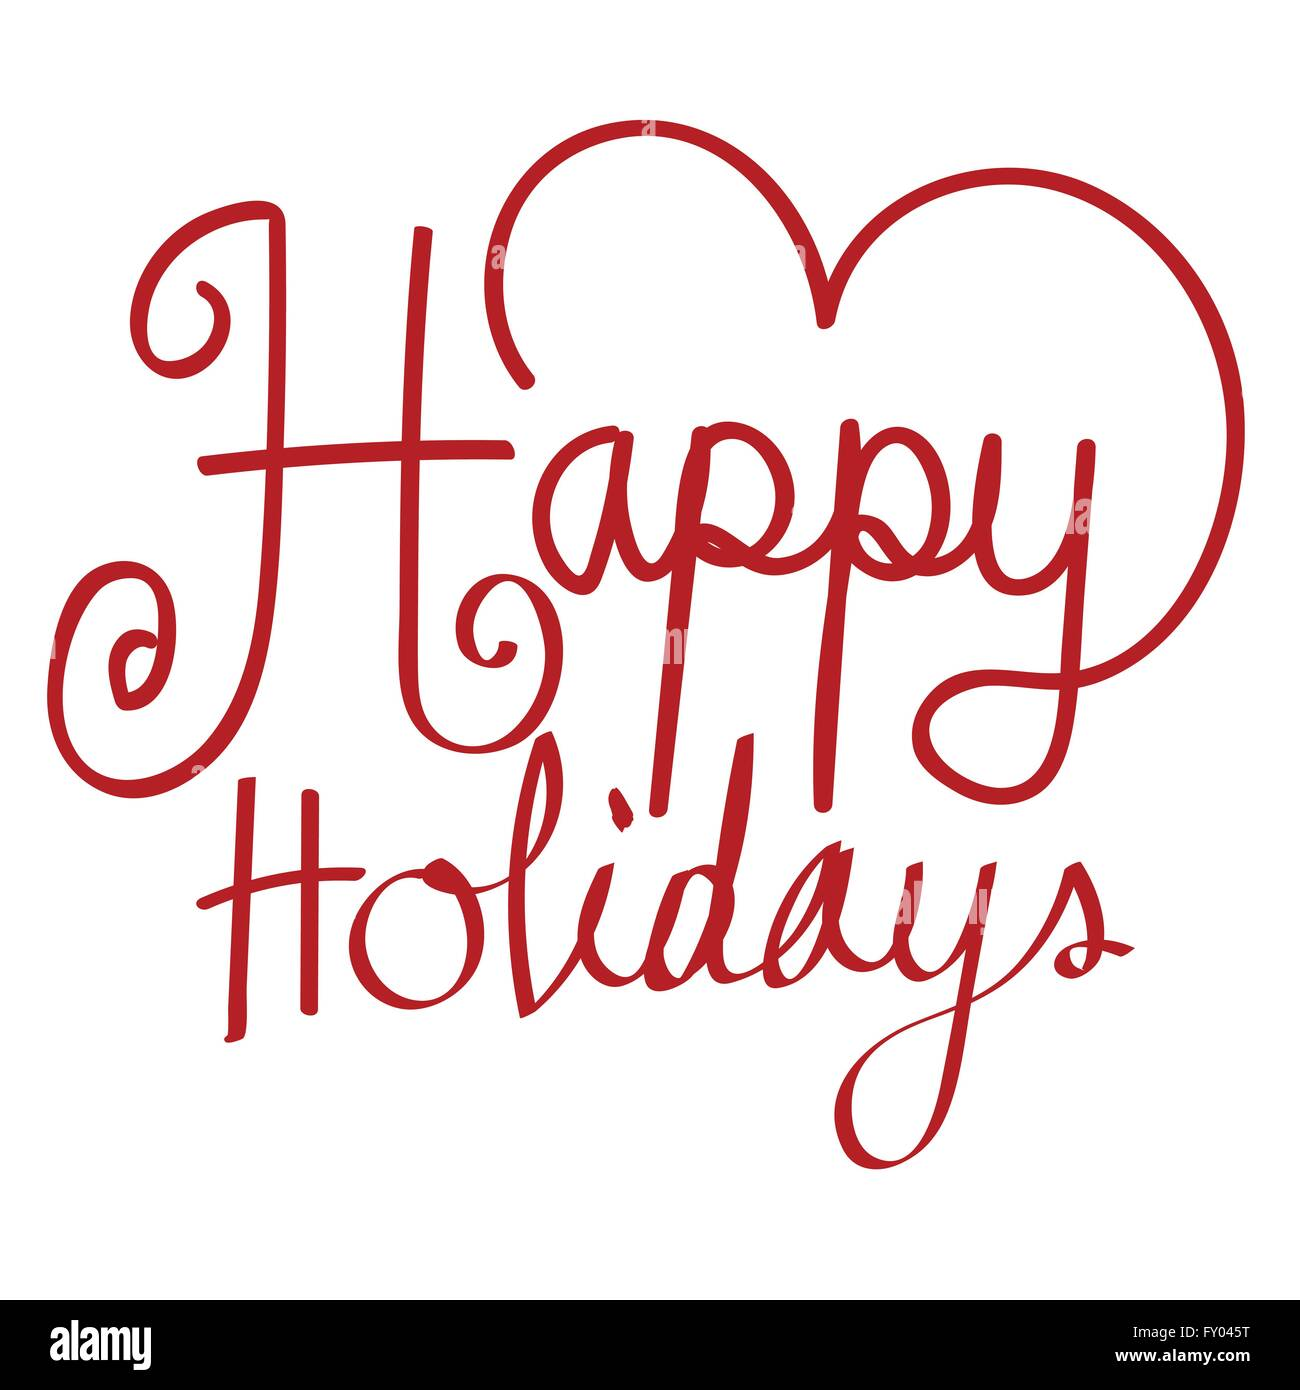 Happy Holidays Vector Illustration For Your Holiday Greeting Card